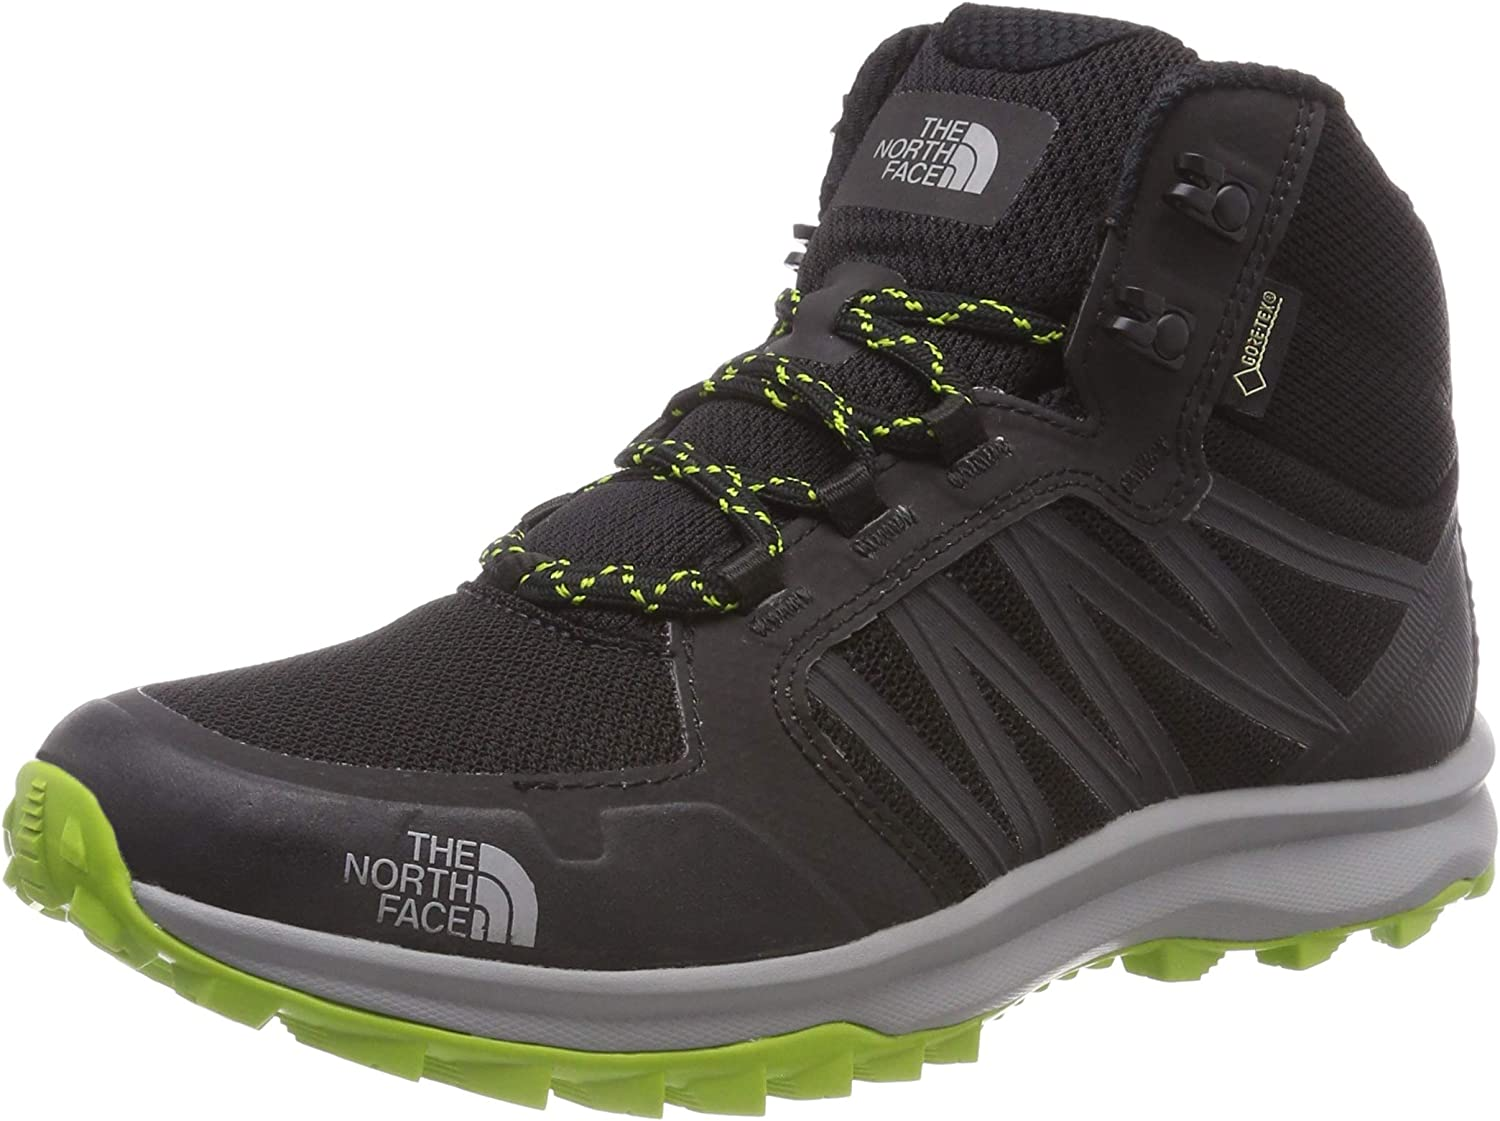 THE NORTH FACE Men's Litewave Fastpack Mid Gore-tex High Rise Hiking Boots